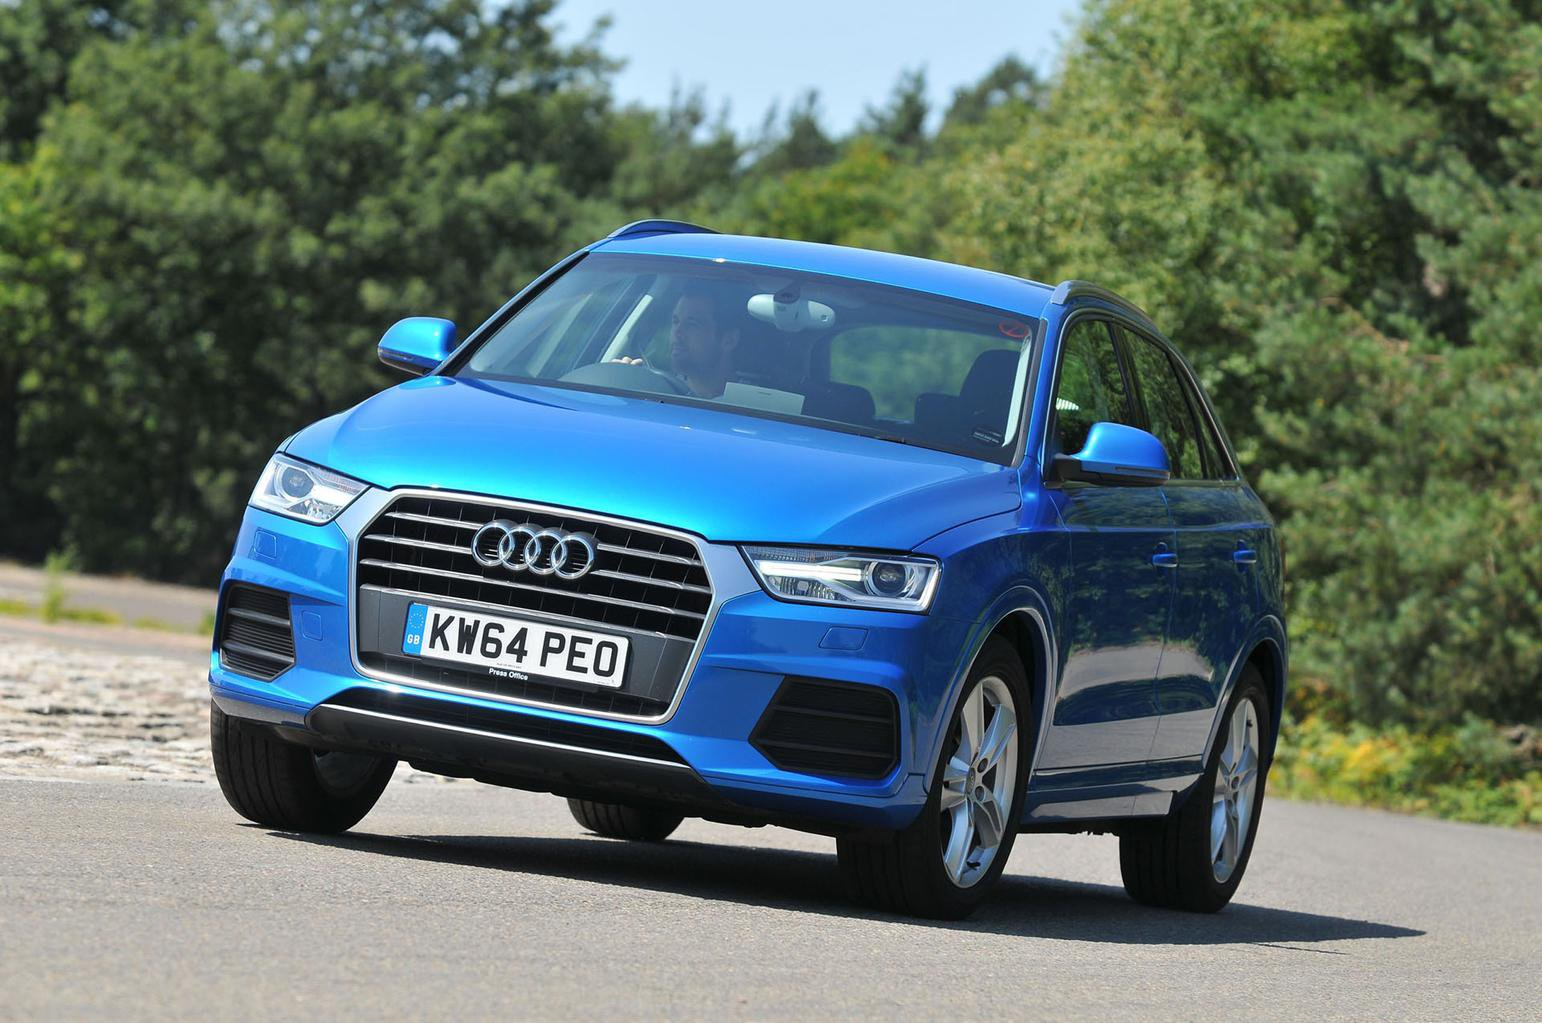 5 reasons to buy an Audi Q3